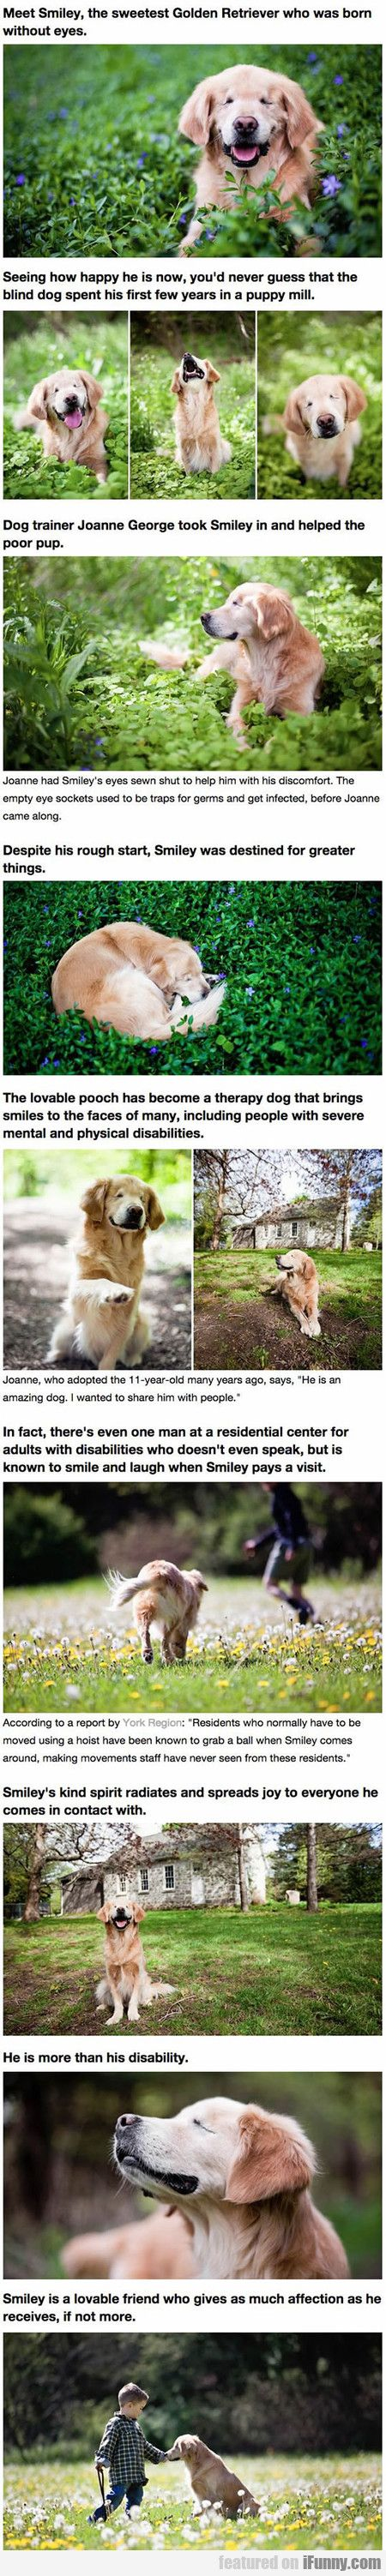 Smiley The Golden Retriever Born Without Eyes Animals - Born blind smiley the golden retriever becomes a loving therapy dog